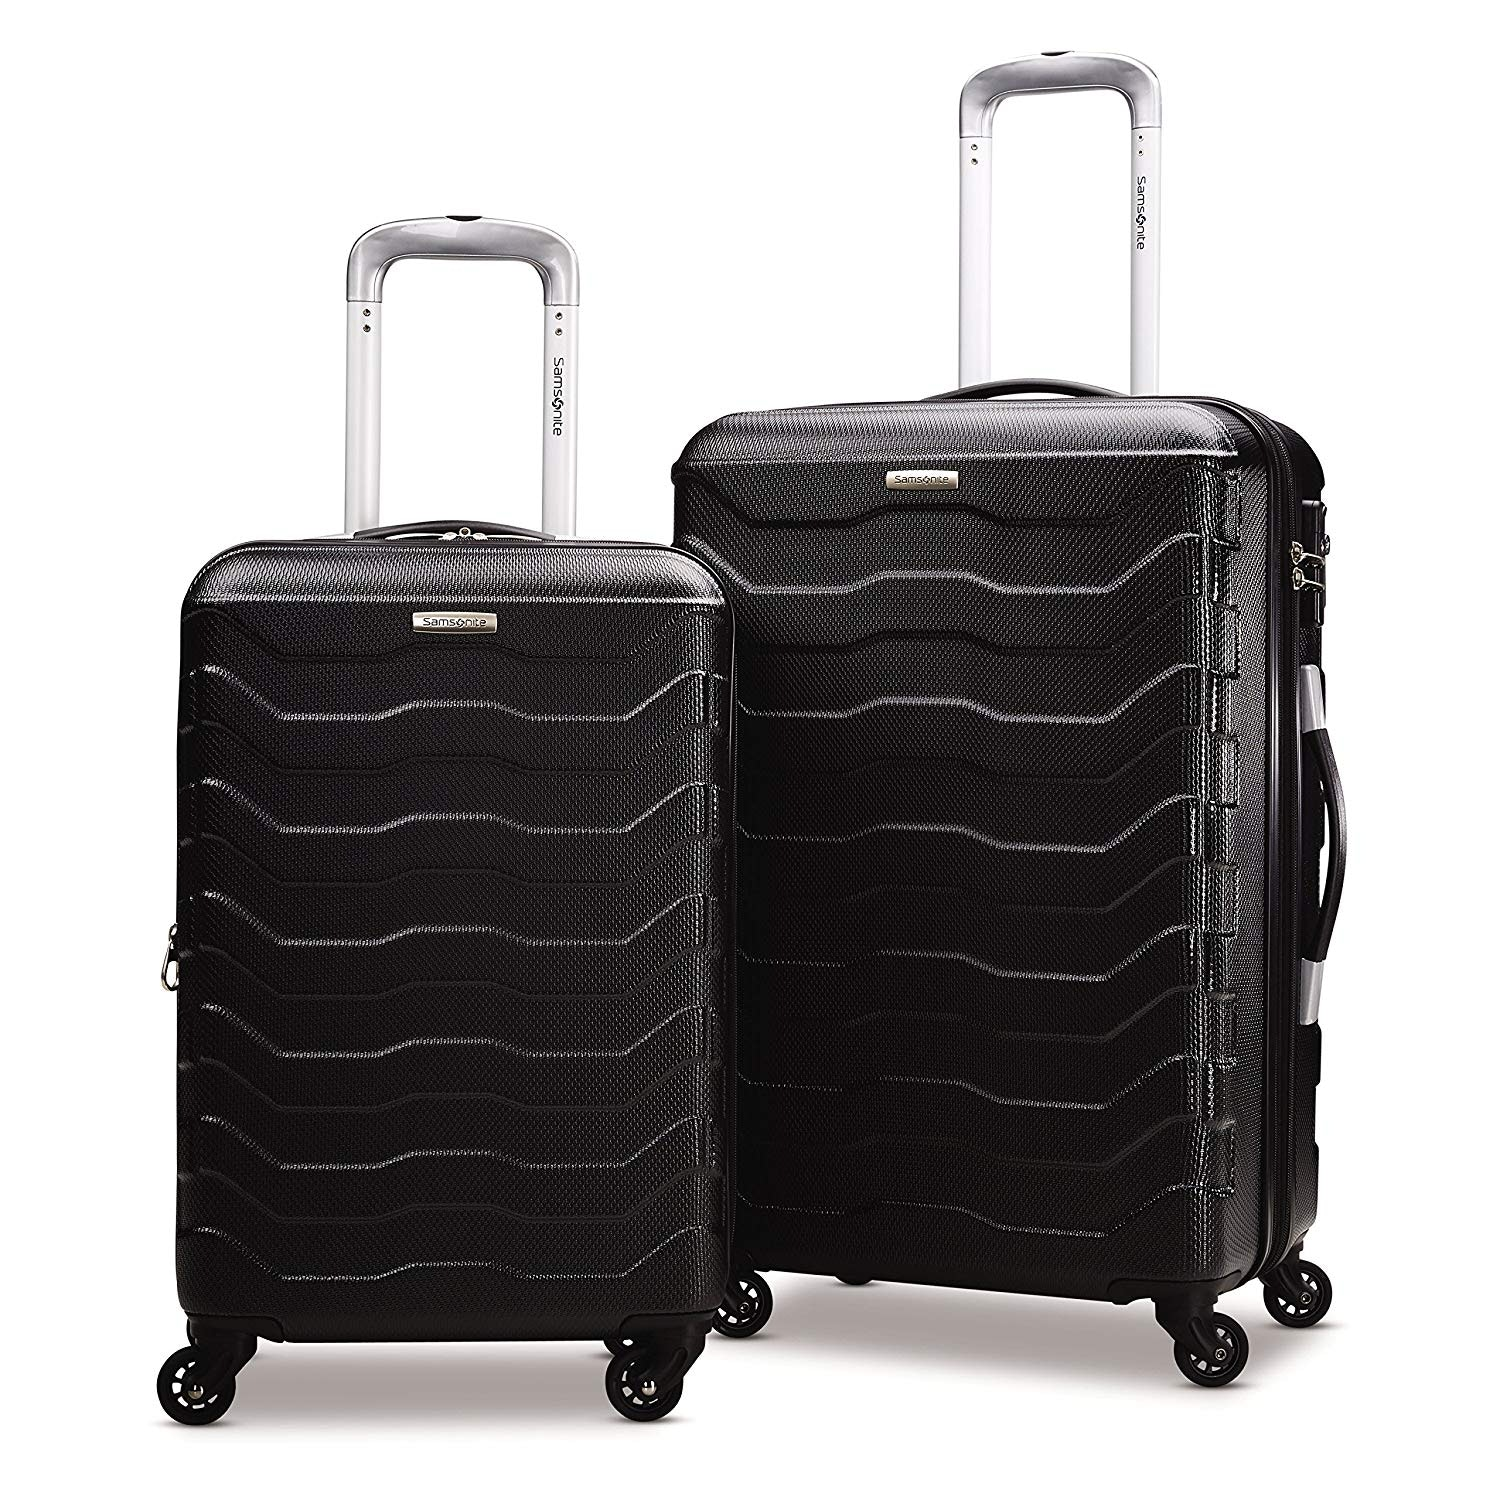 Get two suitcases for just $120.